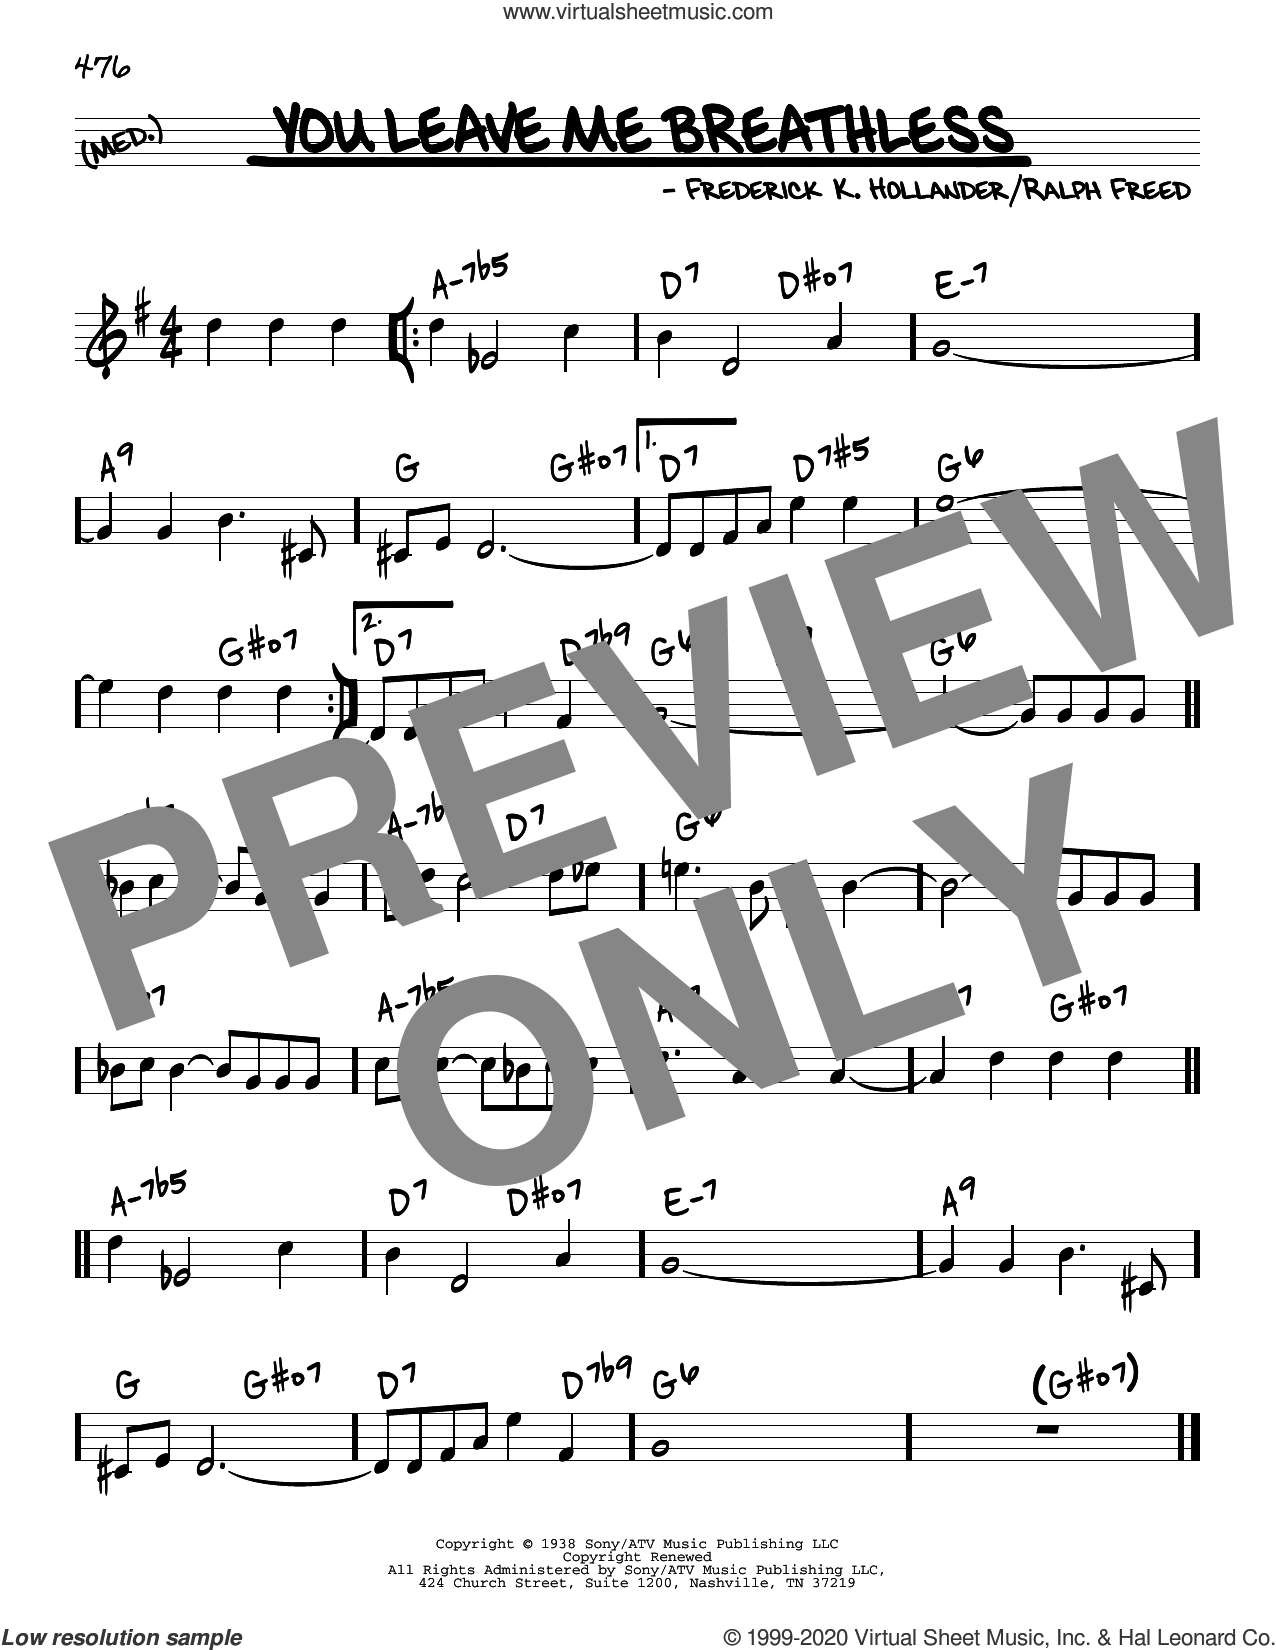 You Leave Me Breathless sheet music for voice and other instruments (real book) by Tommy Dorsey & His Orchestra, Joe Williams, Frederick K. Hollander and Ralph Freed, intermediate skill level